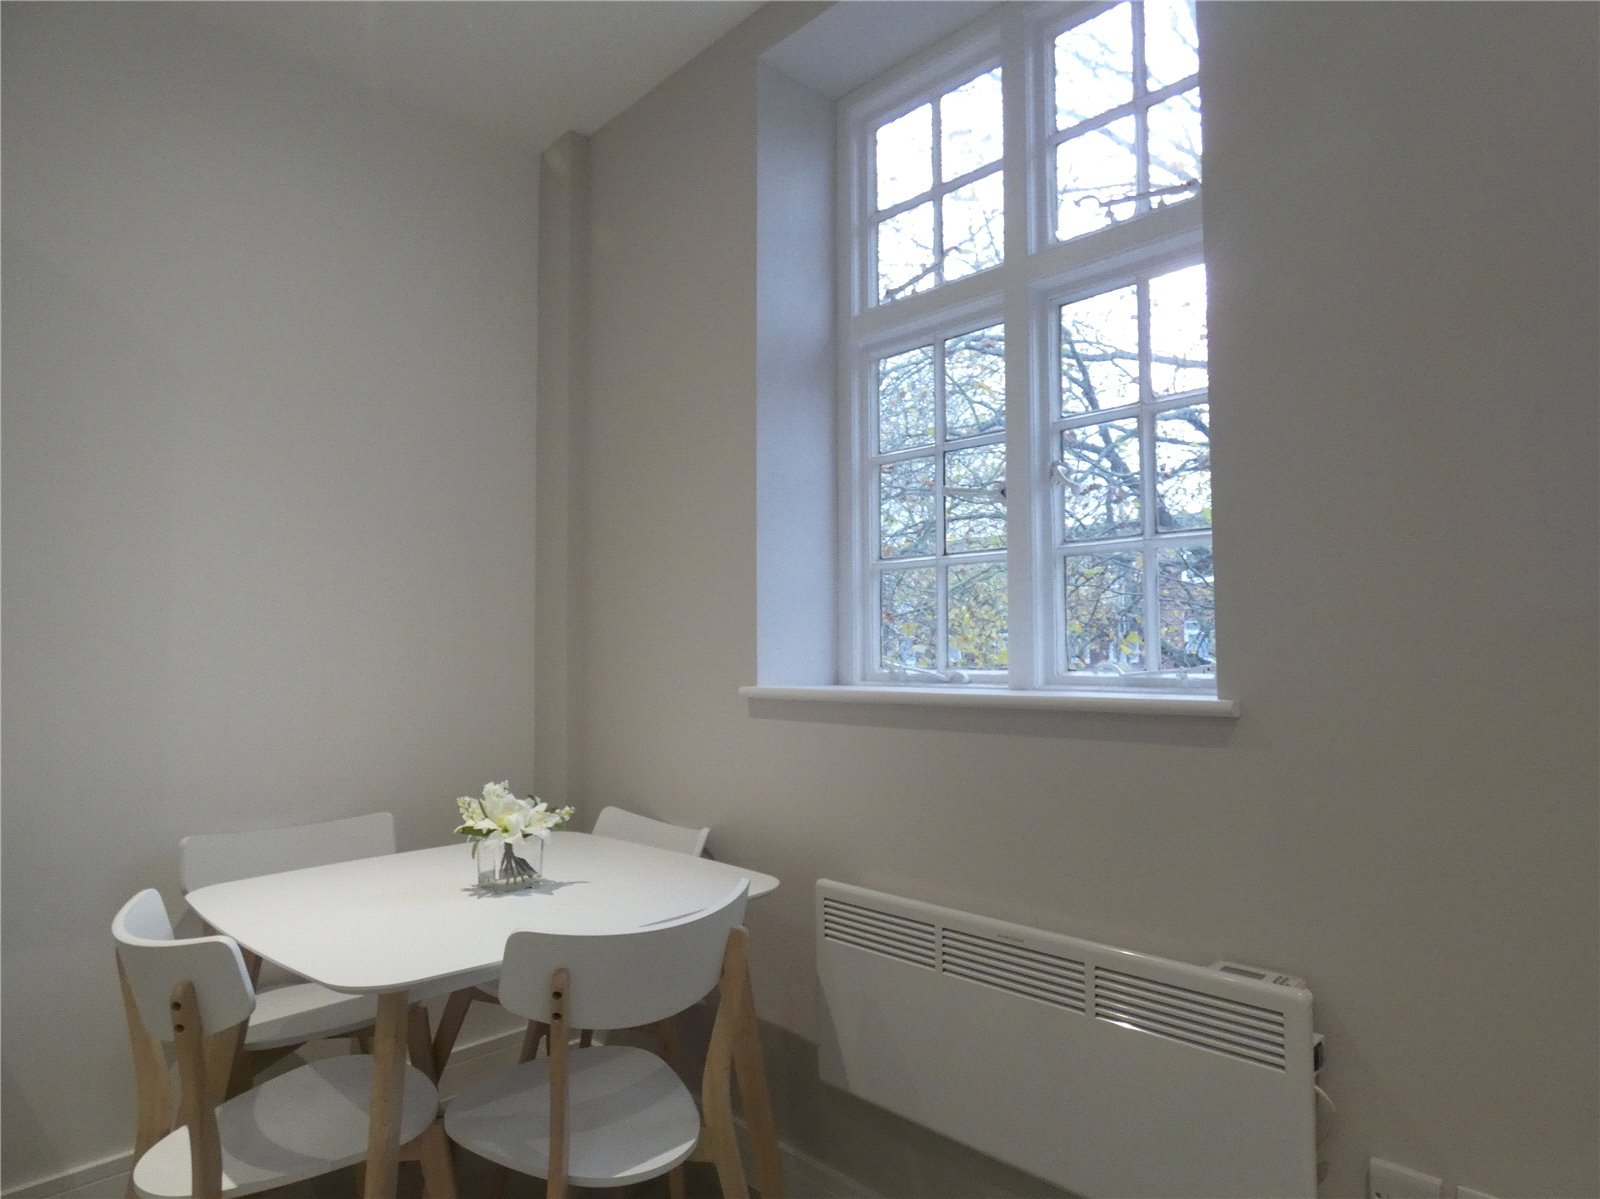 Apartment to rent in Whetstone, N20 9HW  - Property Image 6